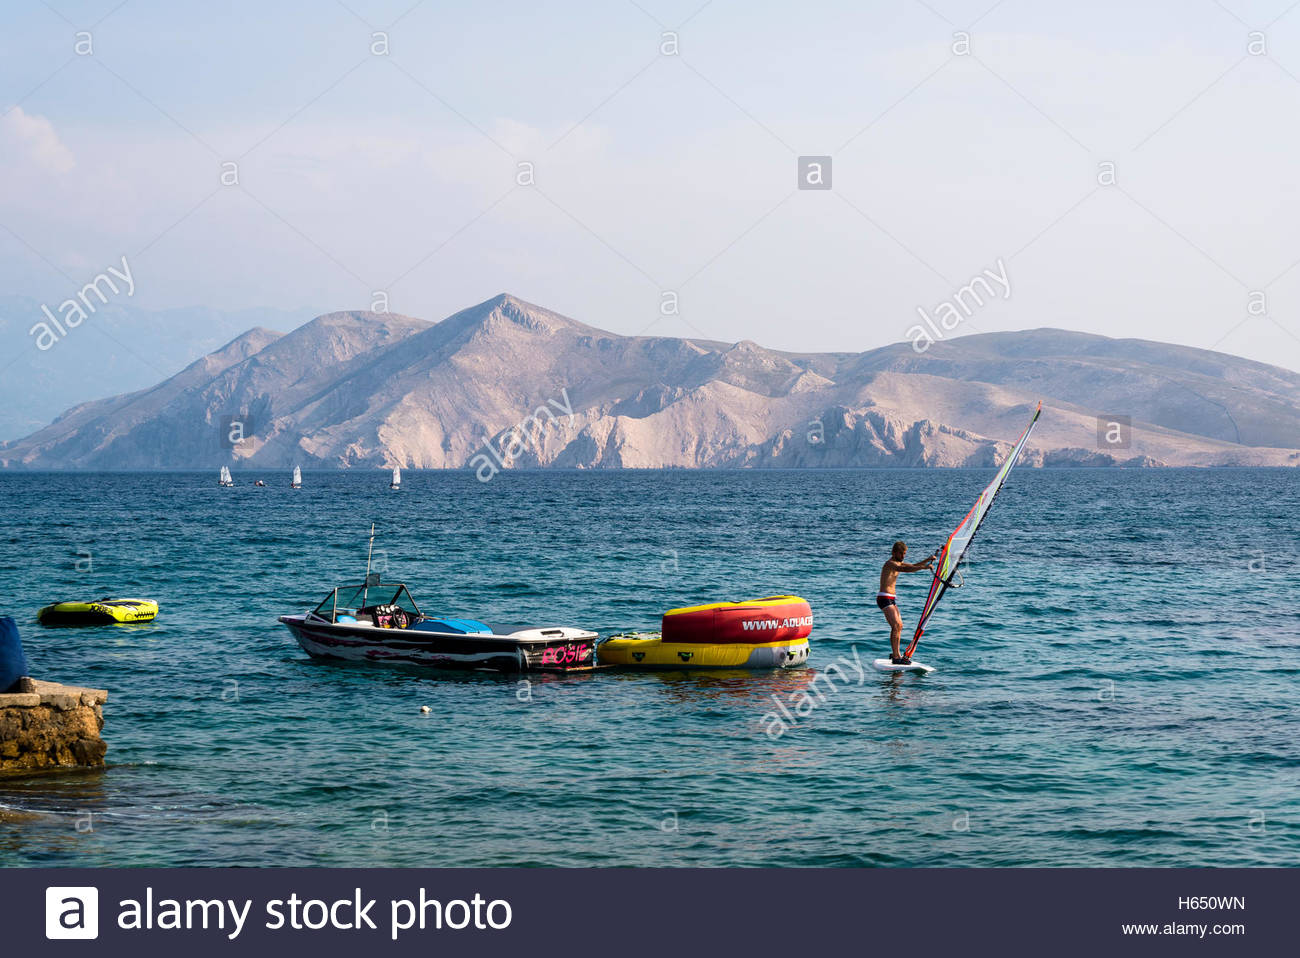 Windsurfing, Baska, Island of Krk, Croatia - Stock Image